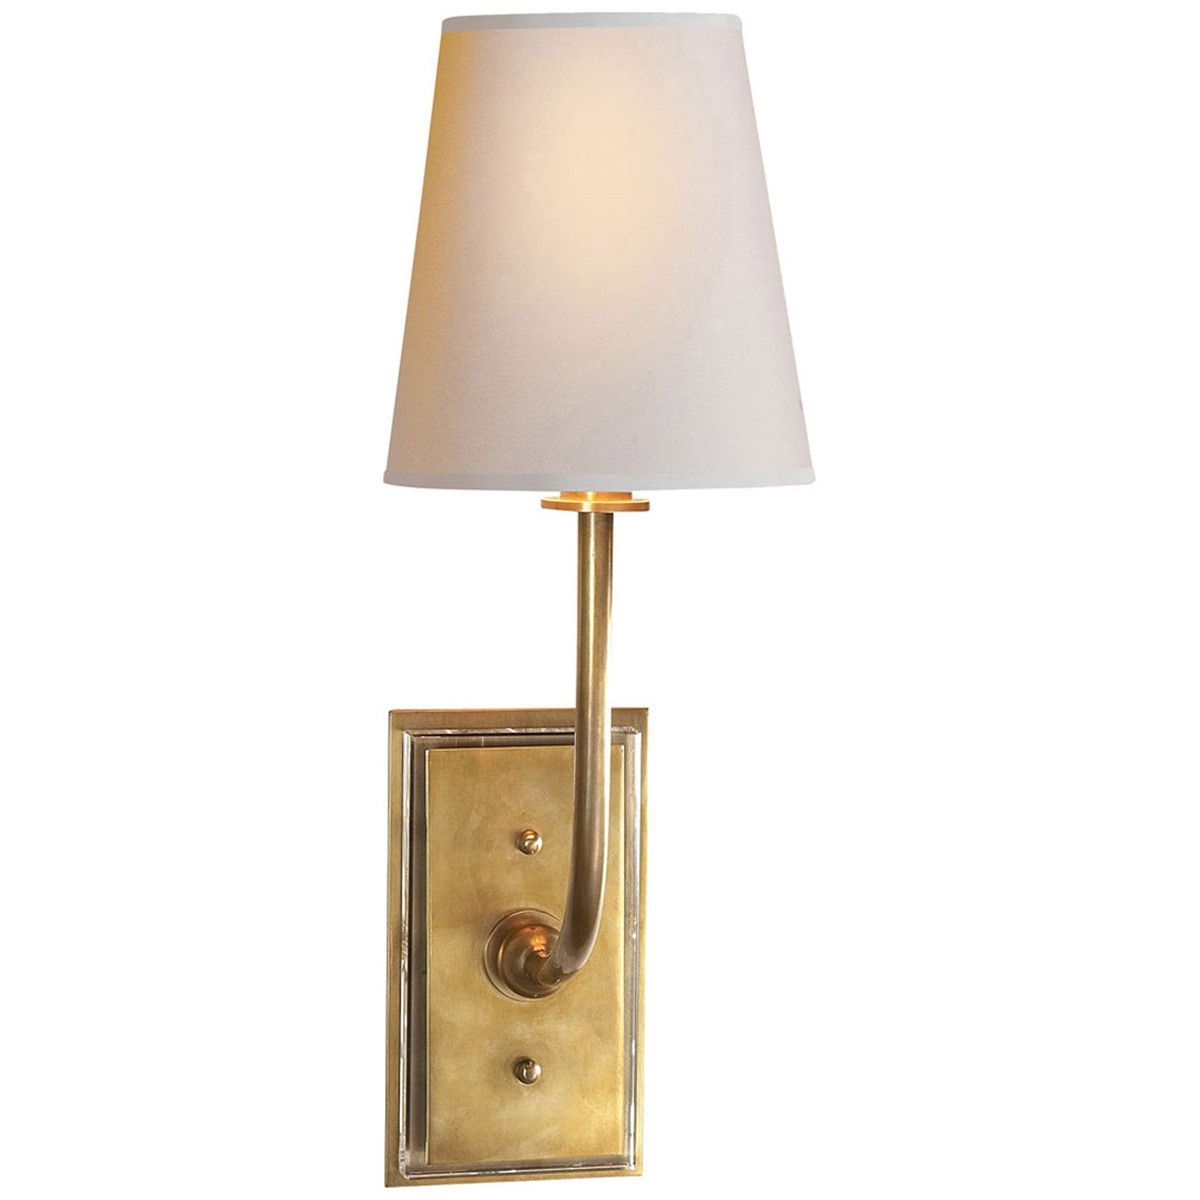 This 1 light Decorative Wall Light from the Thomas OBrien Hulton collection by Visual Comfort will enhance your home with a perfect mix of form and function. This item qualifies for free shipping! Che